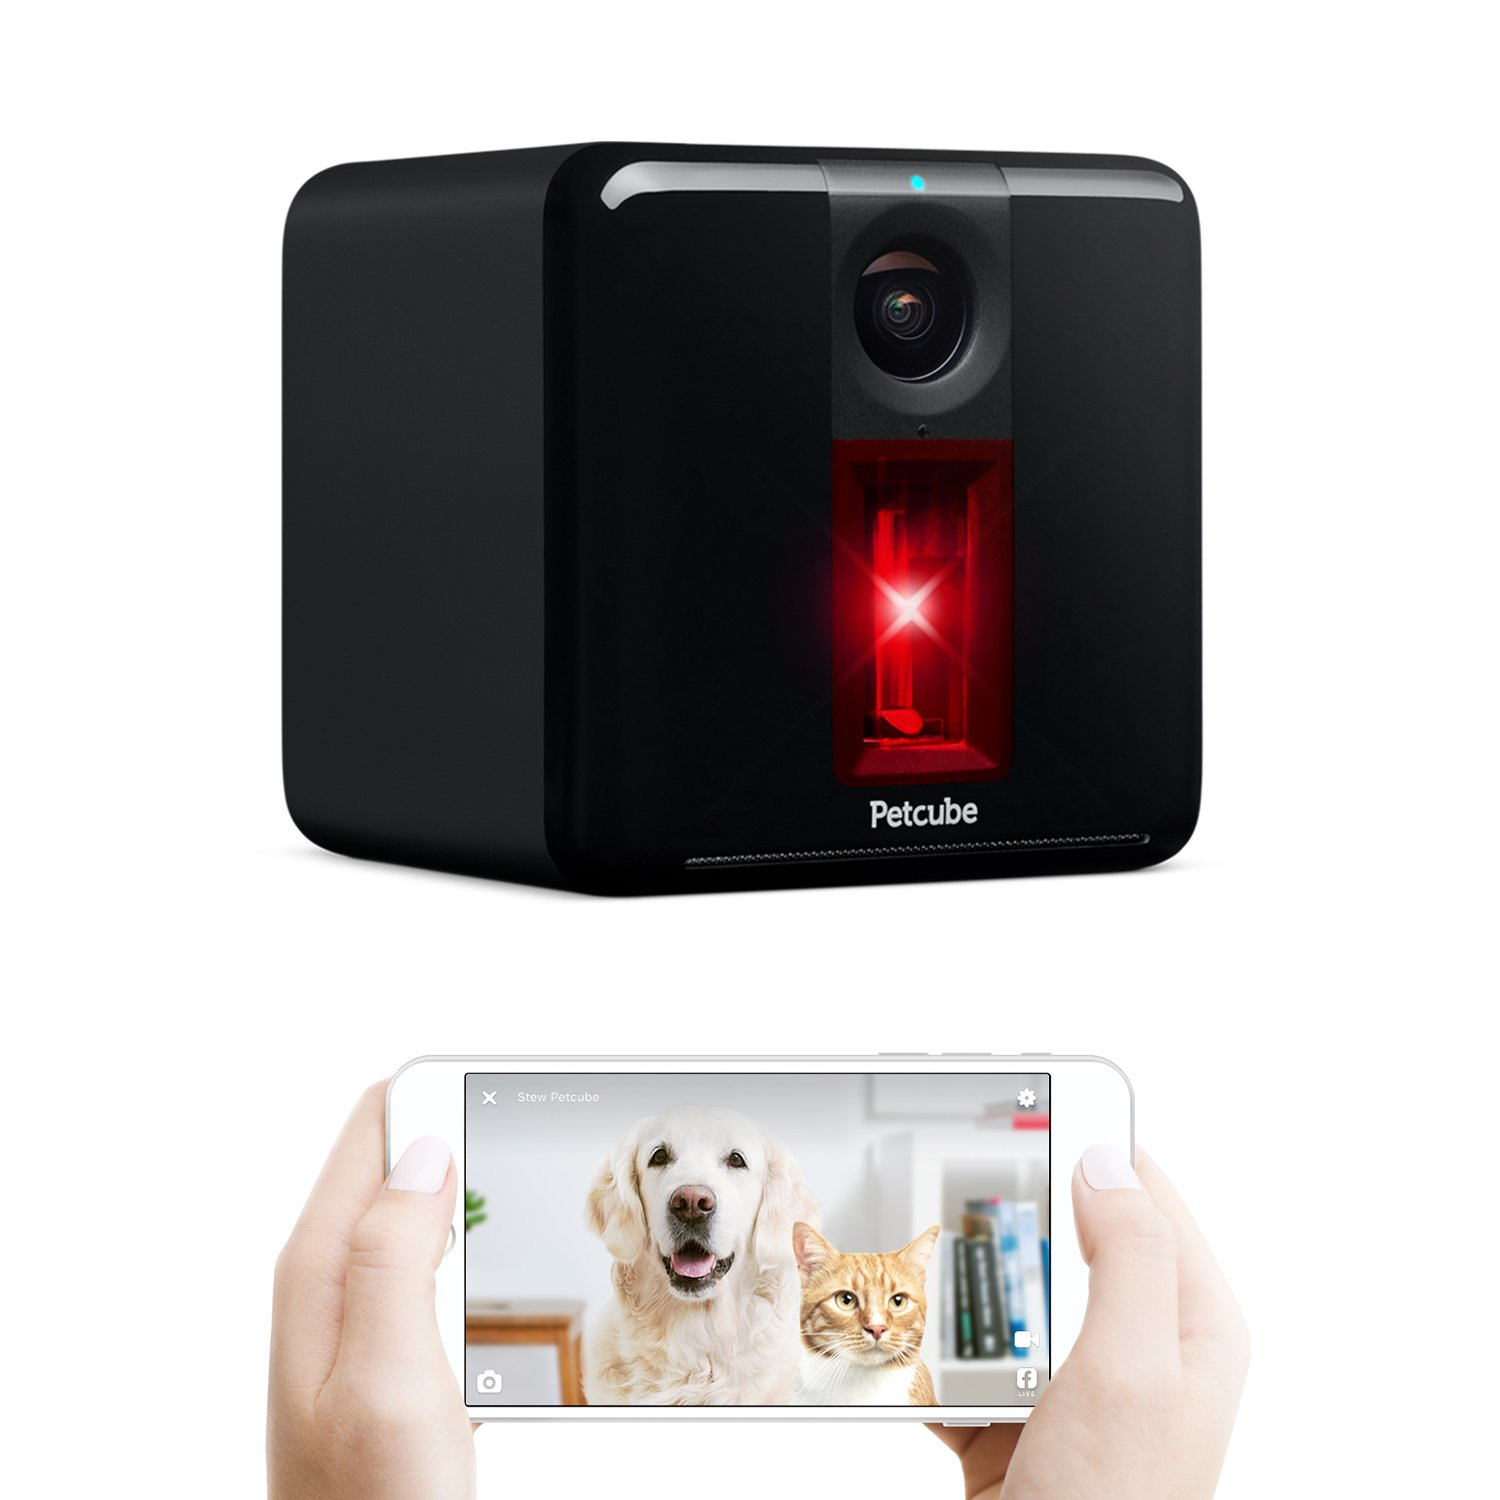 Petcube Play: Pet Camera with 1080p Video, 2-Way Audio, Night Vision, and Laser Toy by Petcube